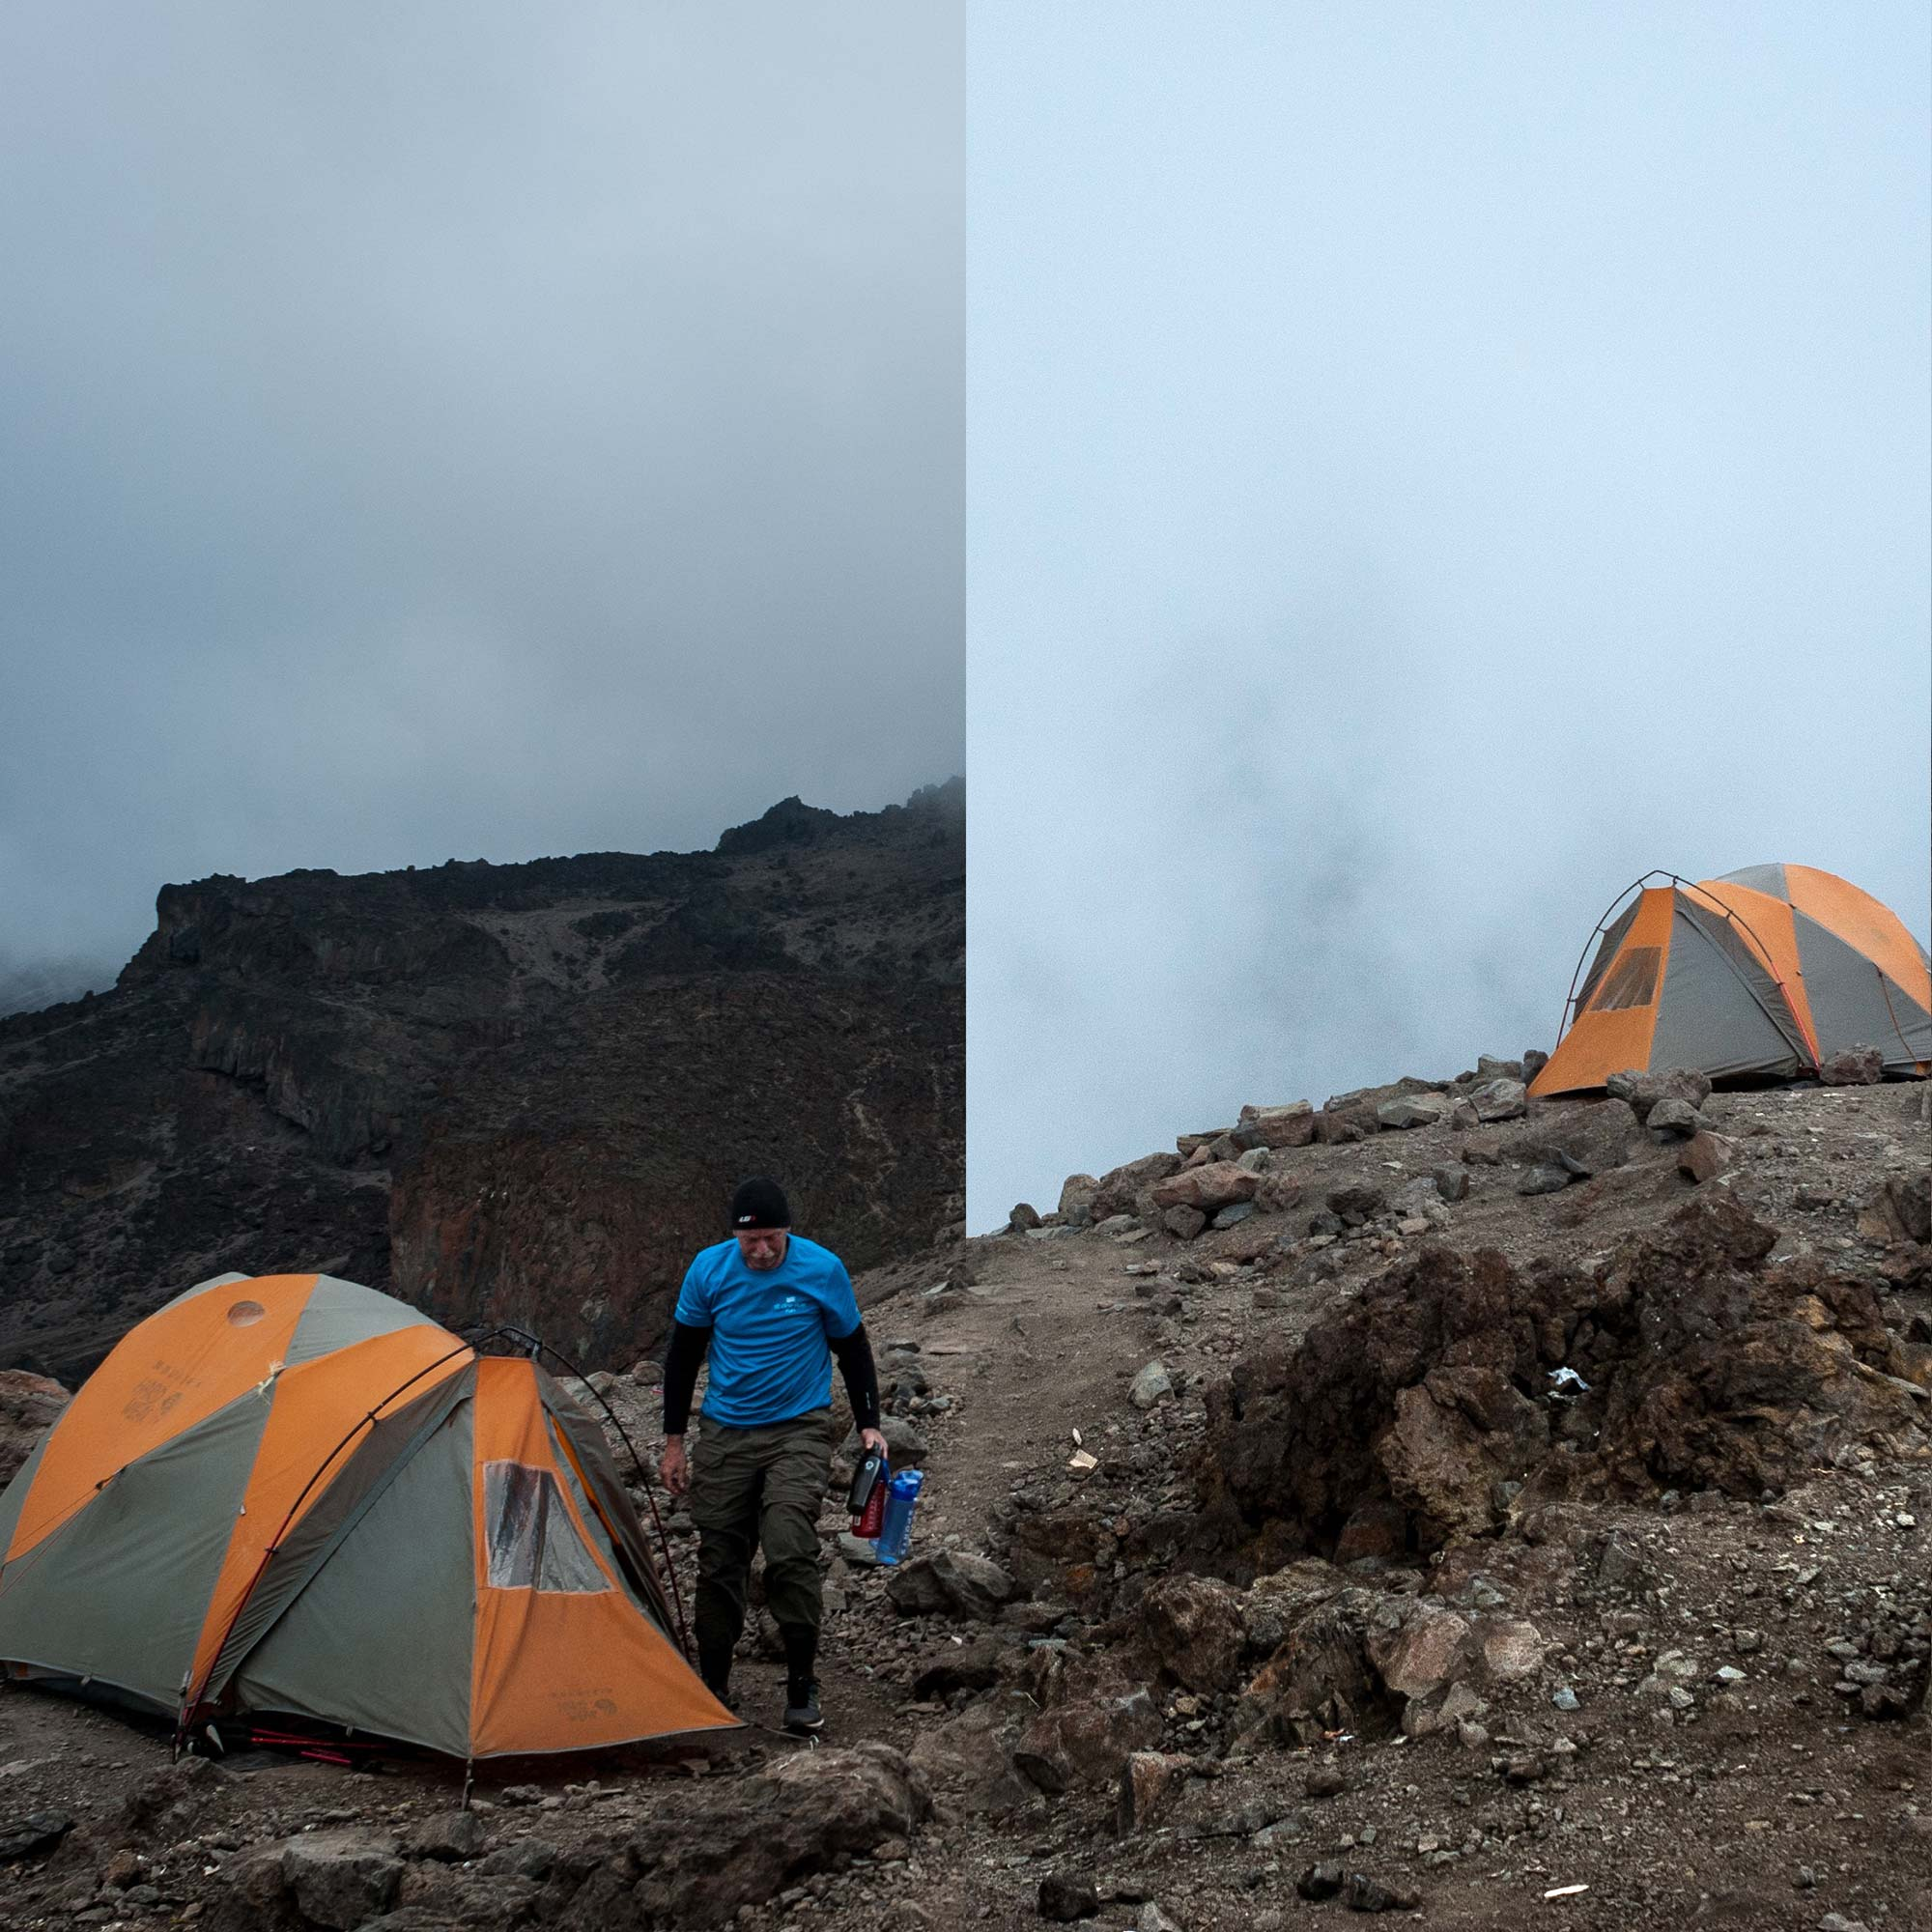 D6-41-variable-weather-conditions-barufu-camp-kilimanjaro.jpg